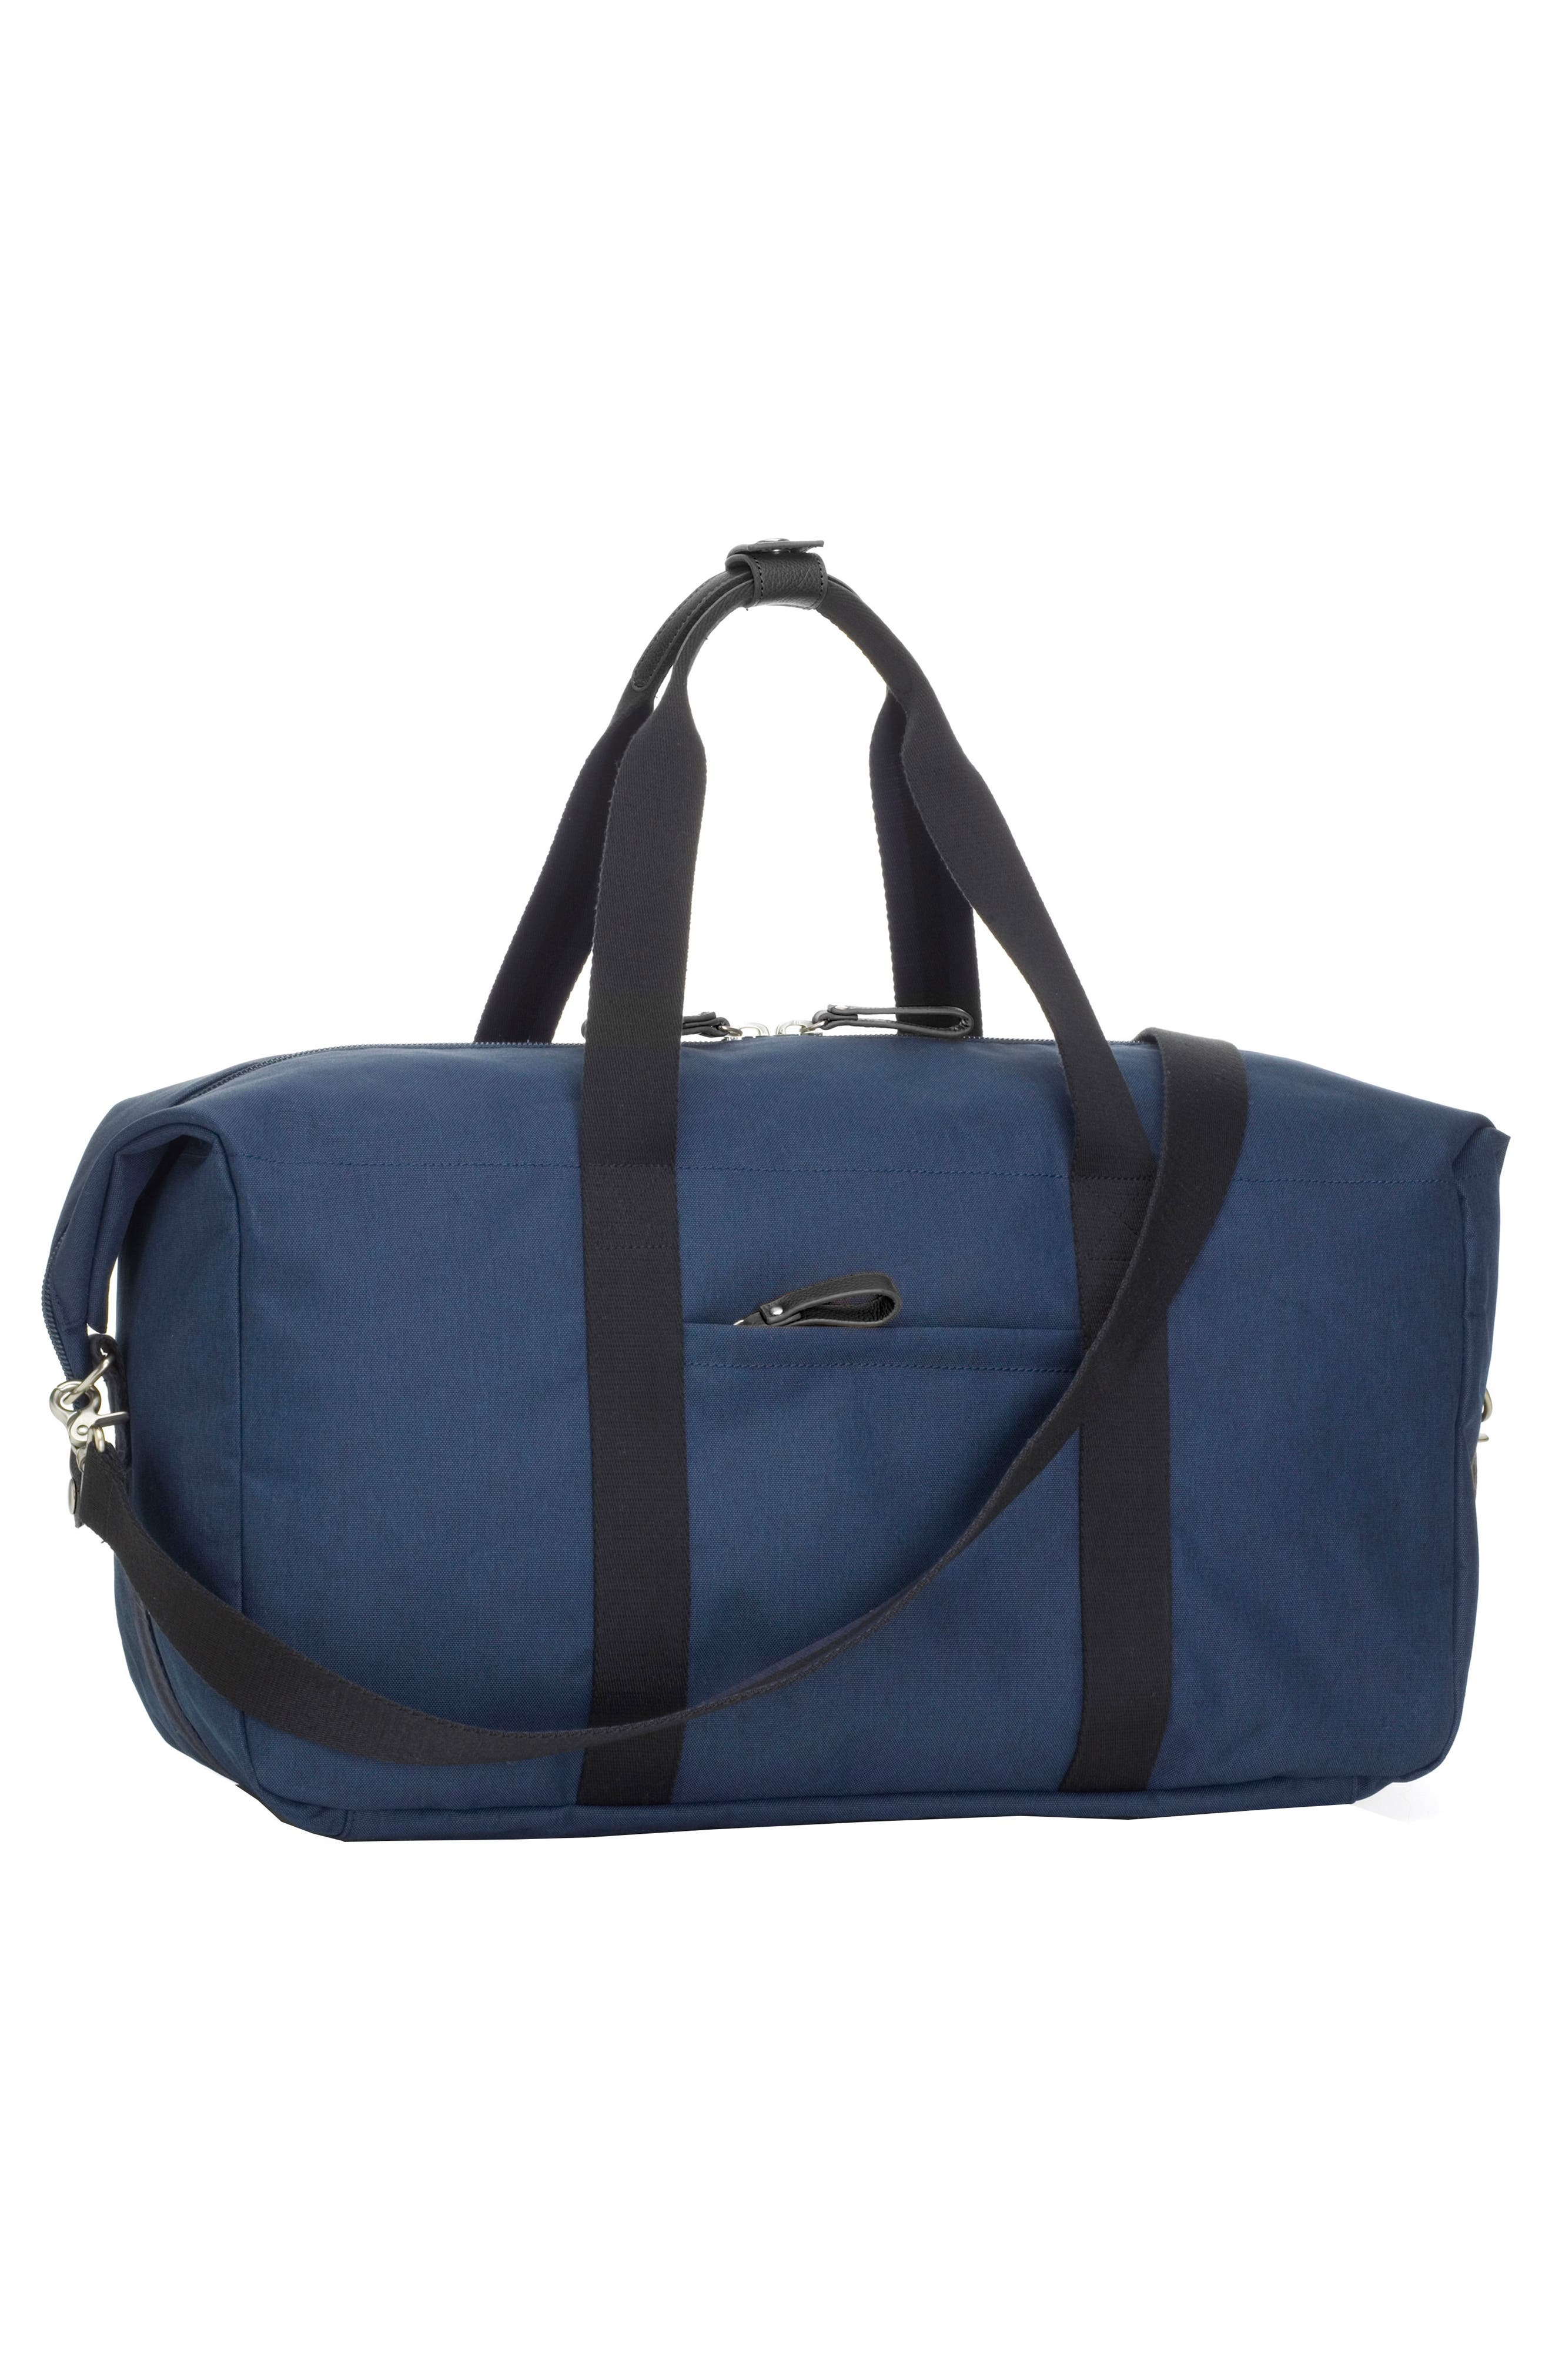 Travel Duffel with Hanging Organizer,                             Alternate thumbnail 2, color,                             NAVY